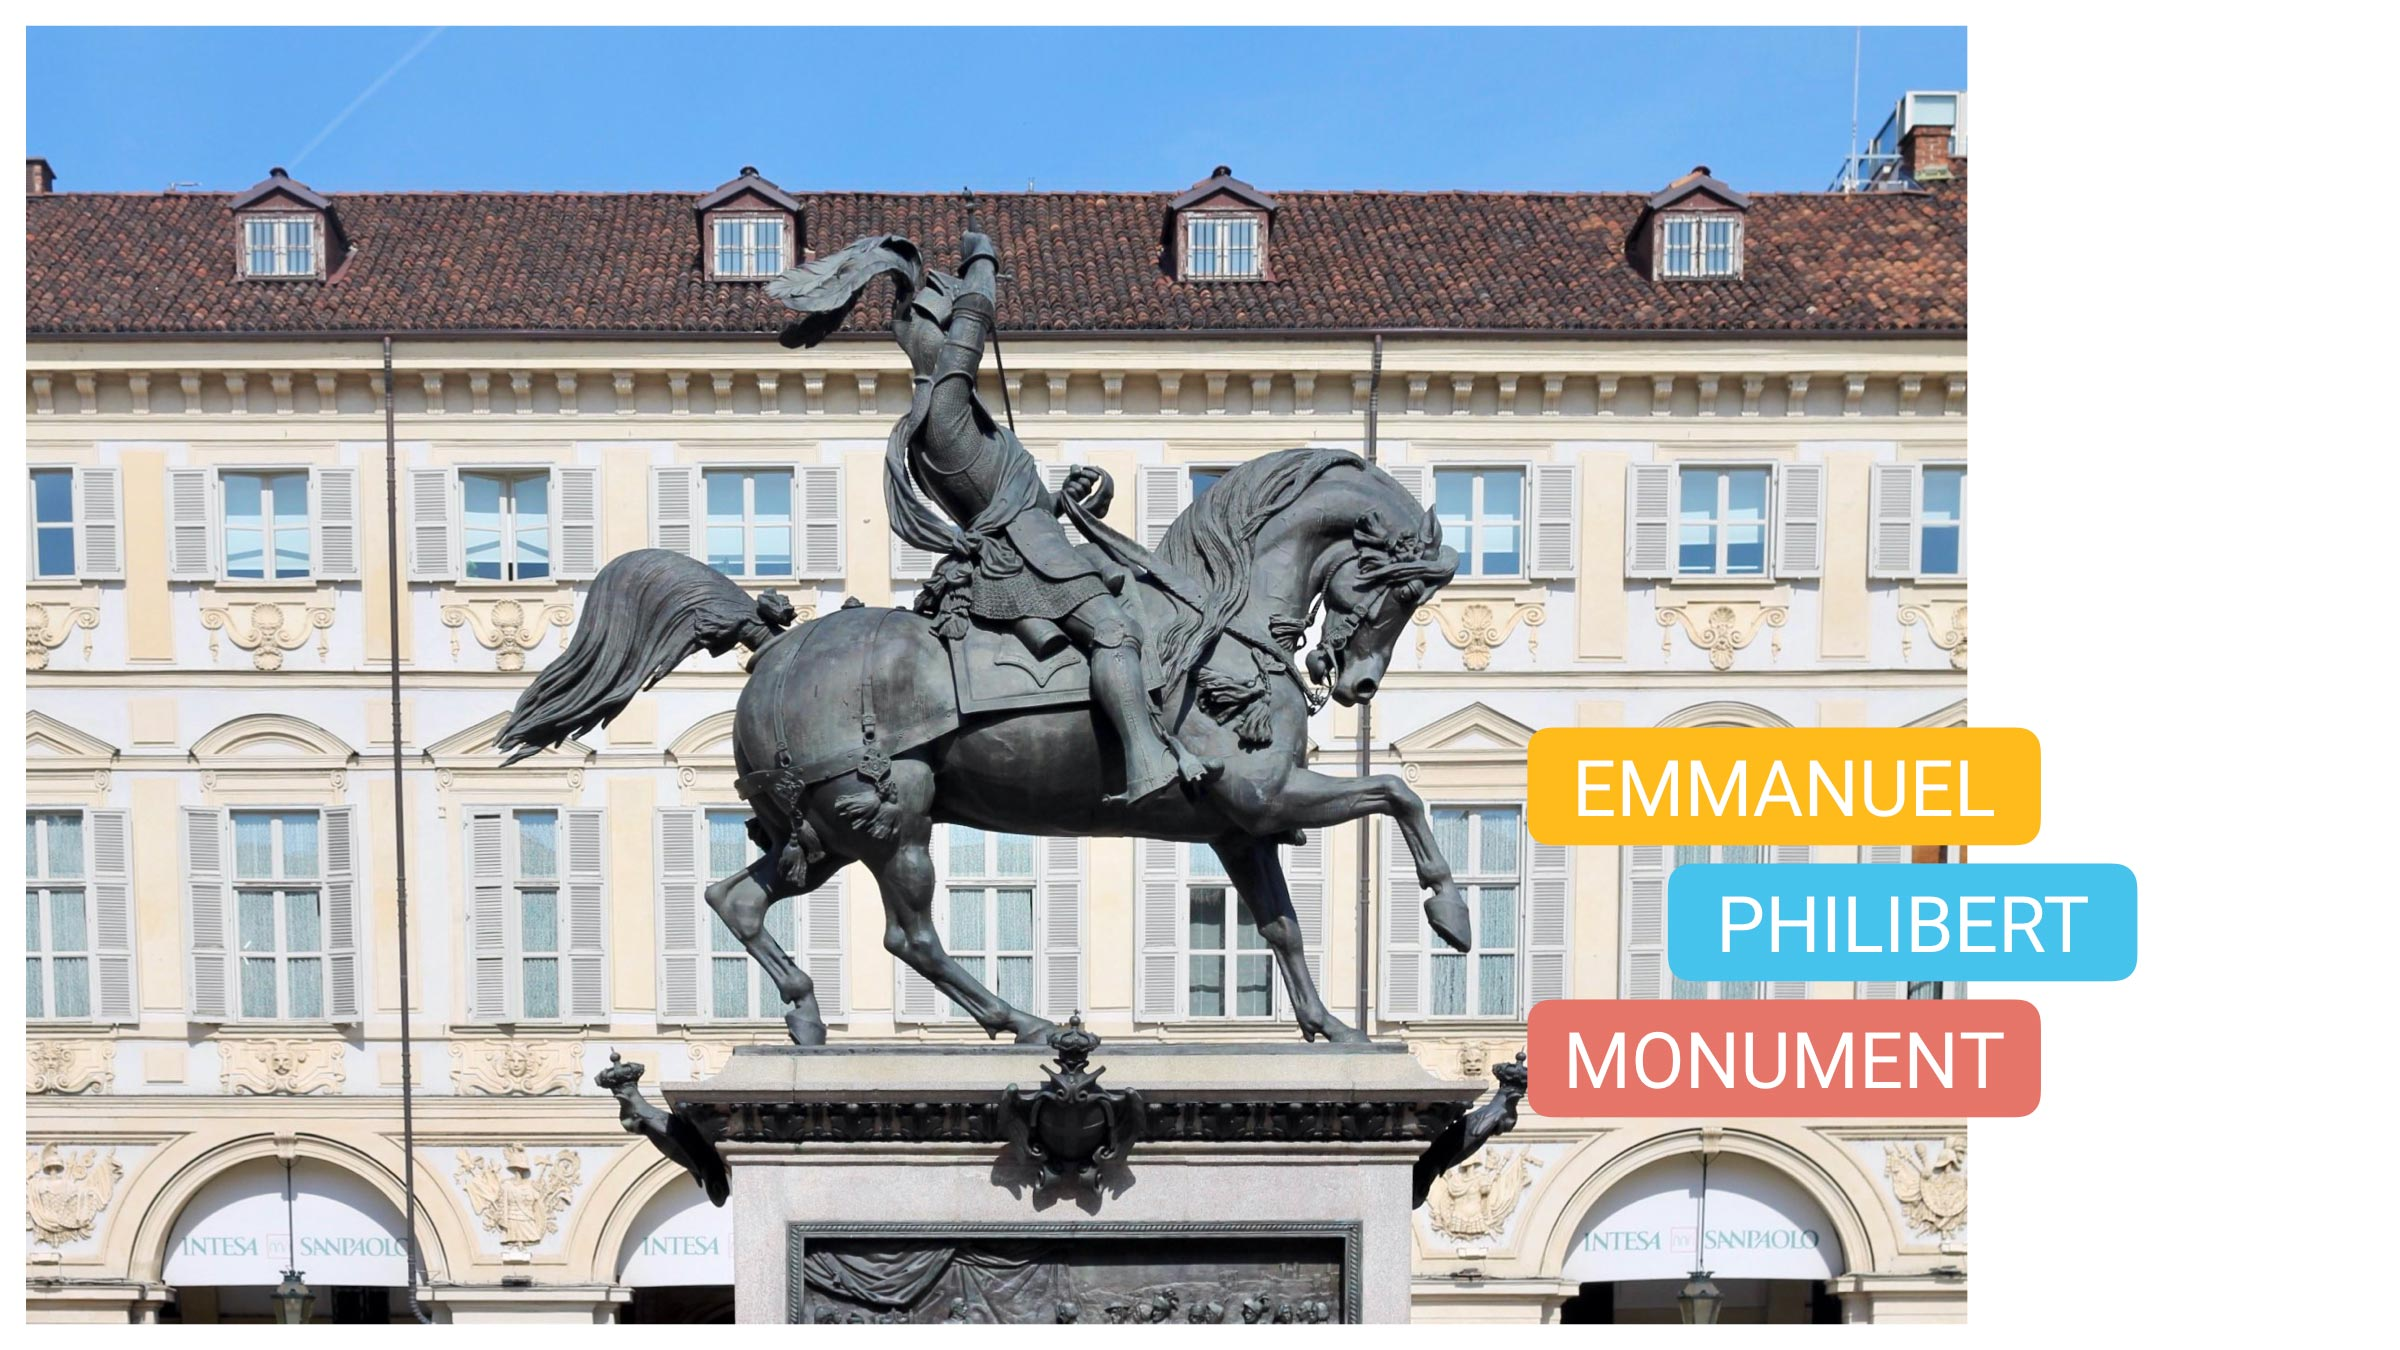 what to see torino piazza san carlo turin city center thing to do emmanuel philibert monument